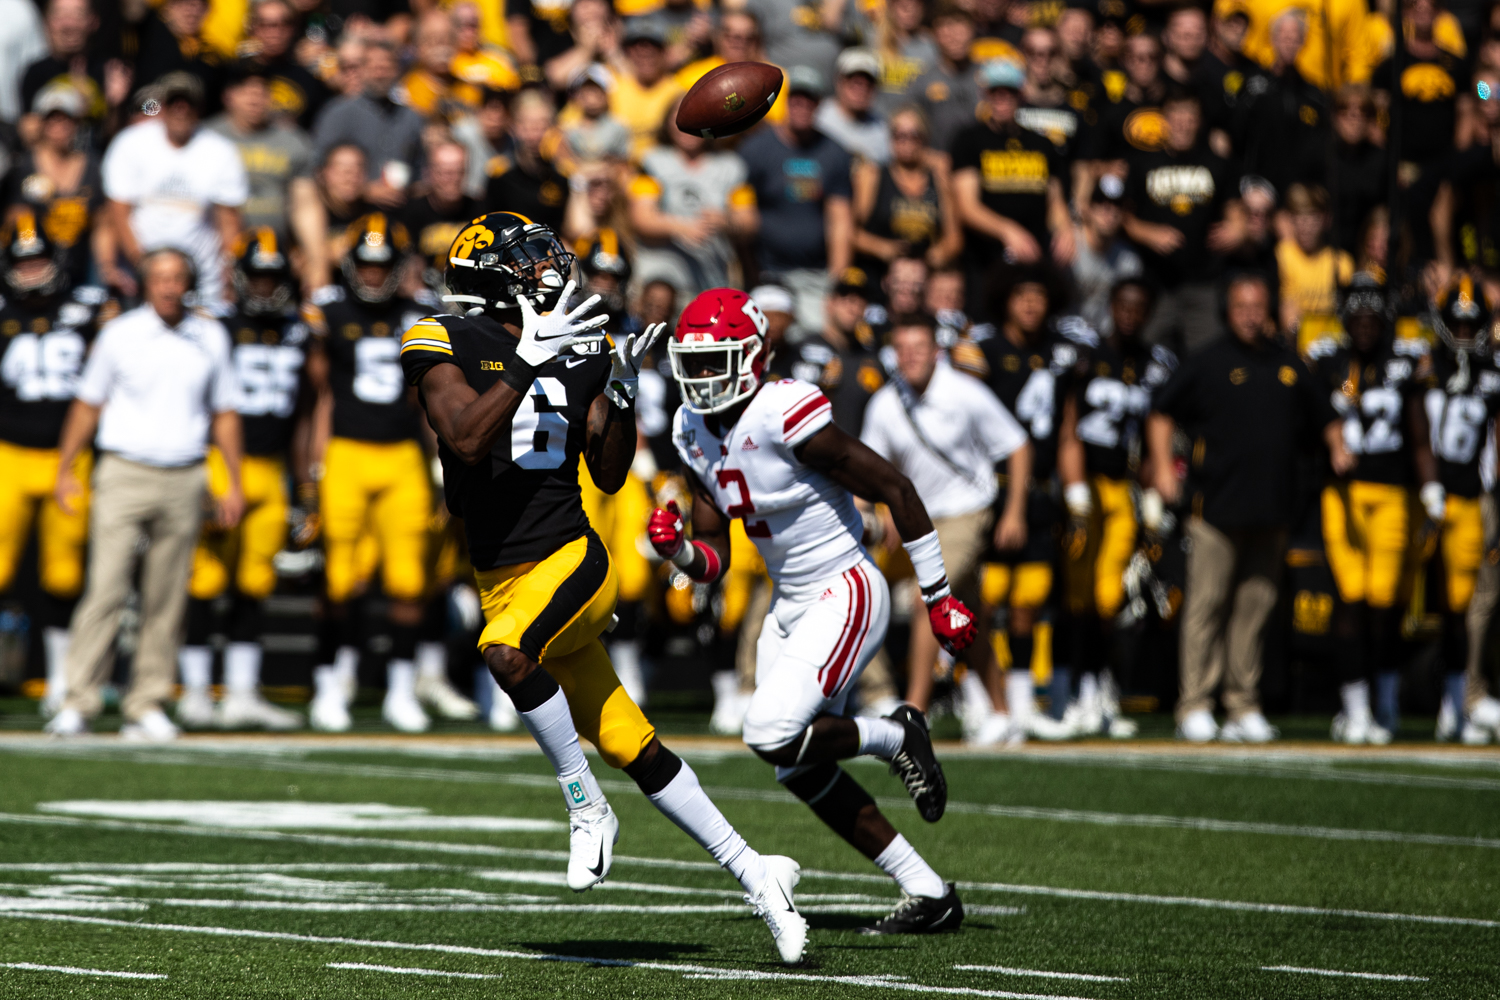 Iowa WR Ihmer Smith-Marsette catches a football that led to a touchdown during a football game between Iowa and Rutgers at Kinnick Stadium on Saturday, September 7, 2019. The Hawkeyes defeated the Scarlet Knights, 30-0. (Roman Slabach/ The Daily Iowan)